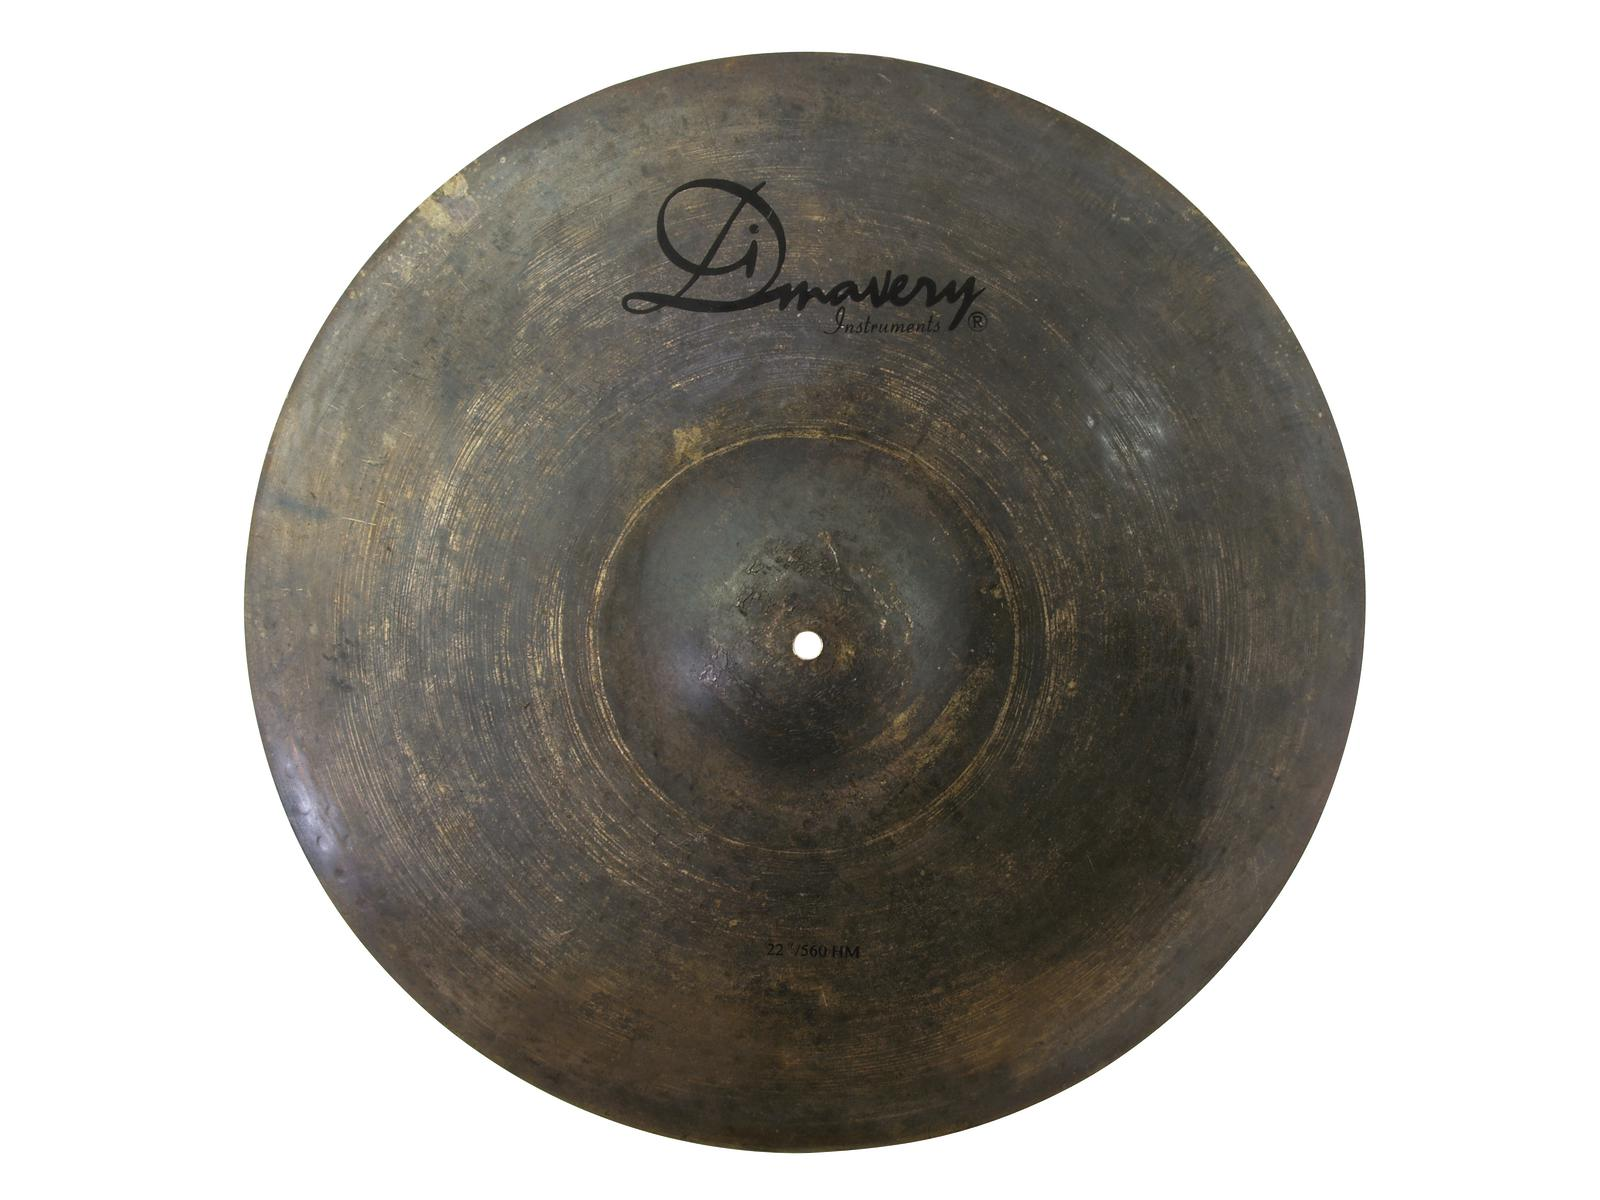 DIMAVERY DBHR-822 Piatto 22-Ride